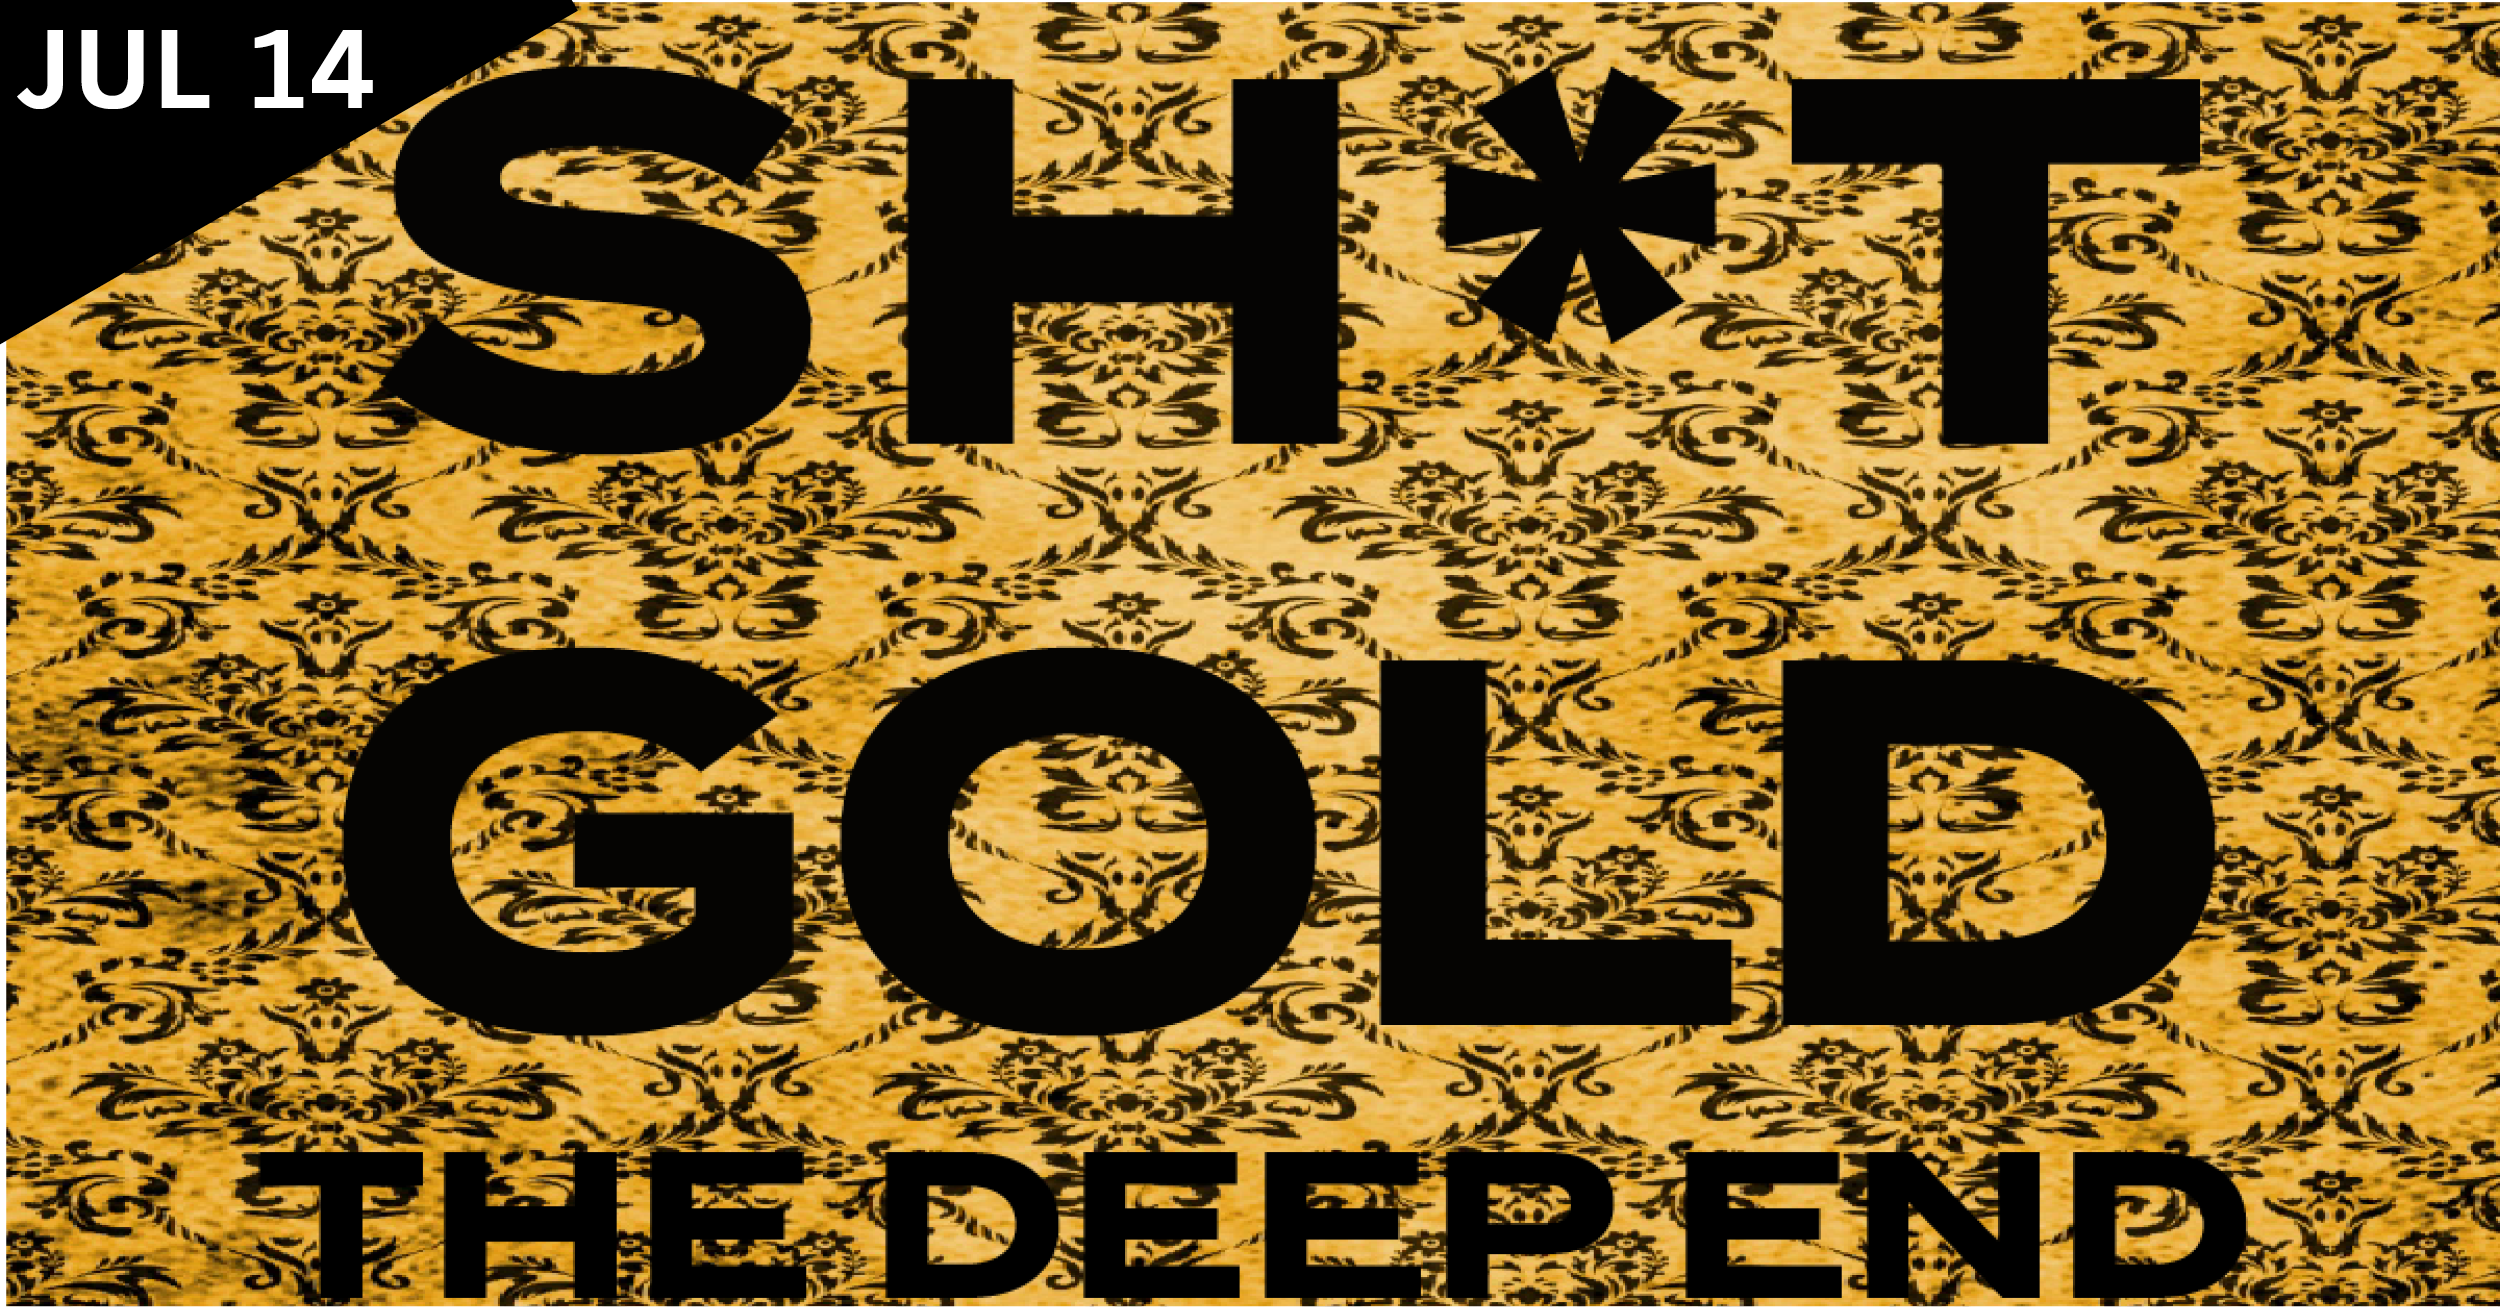 Web_SH*TGOLD_DeepEnd_2019